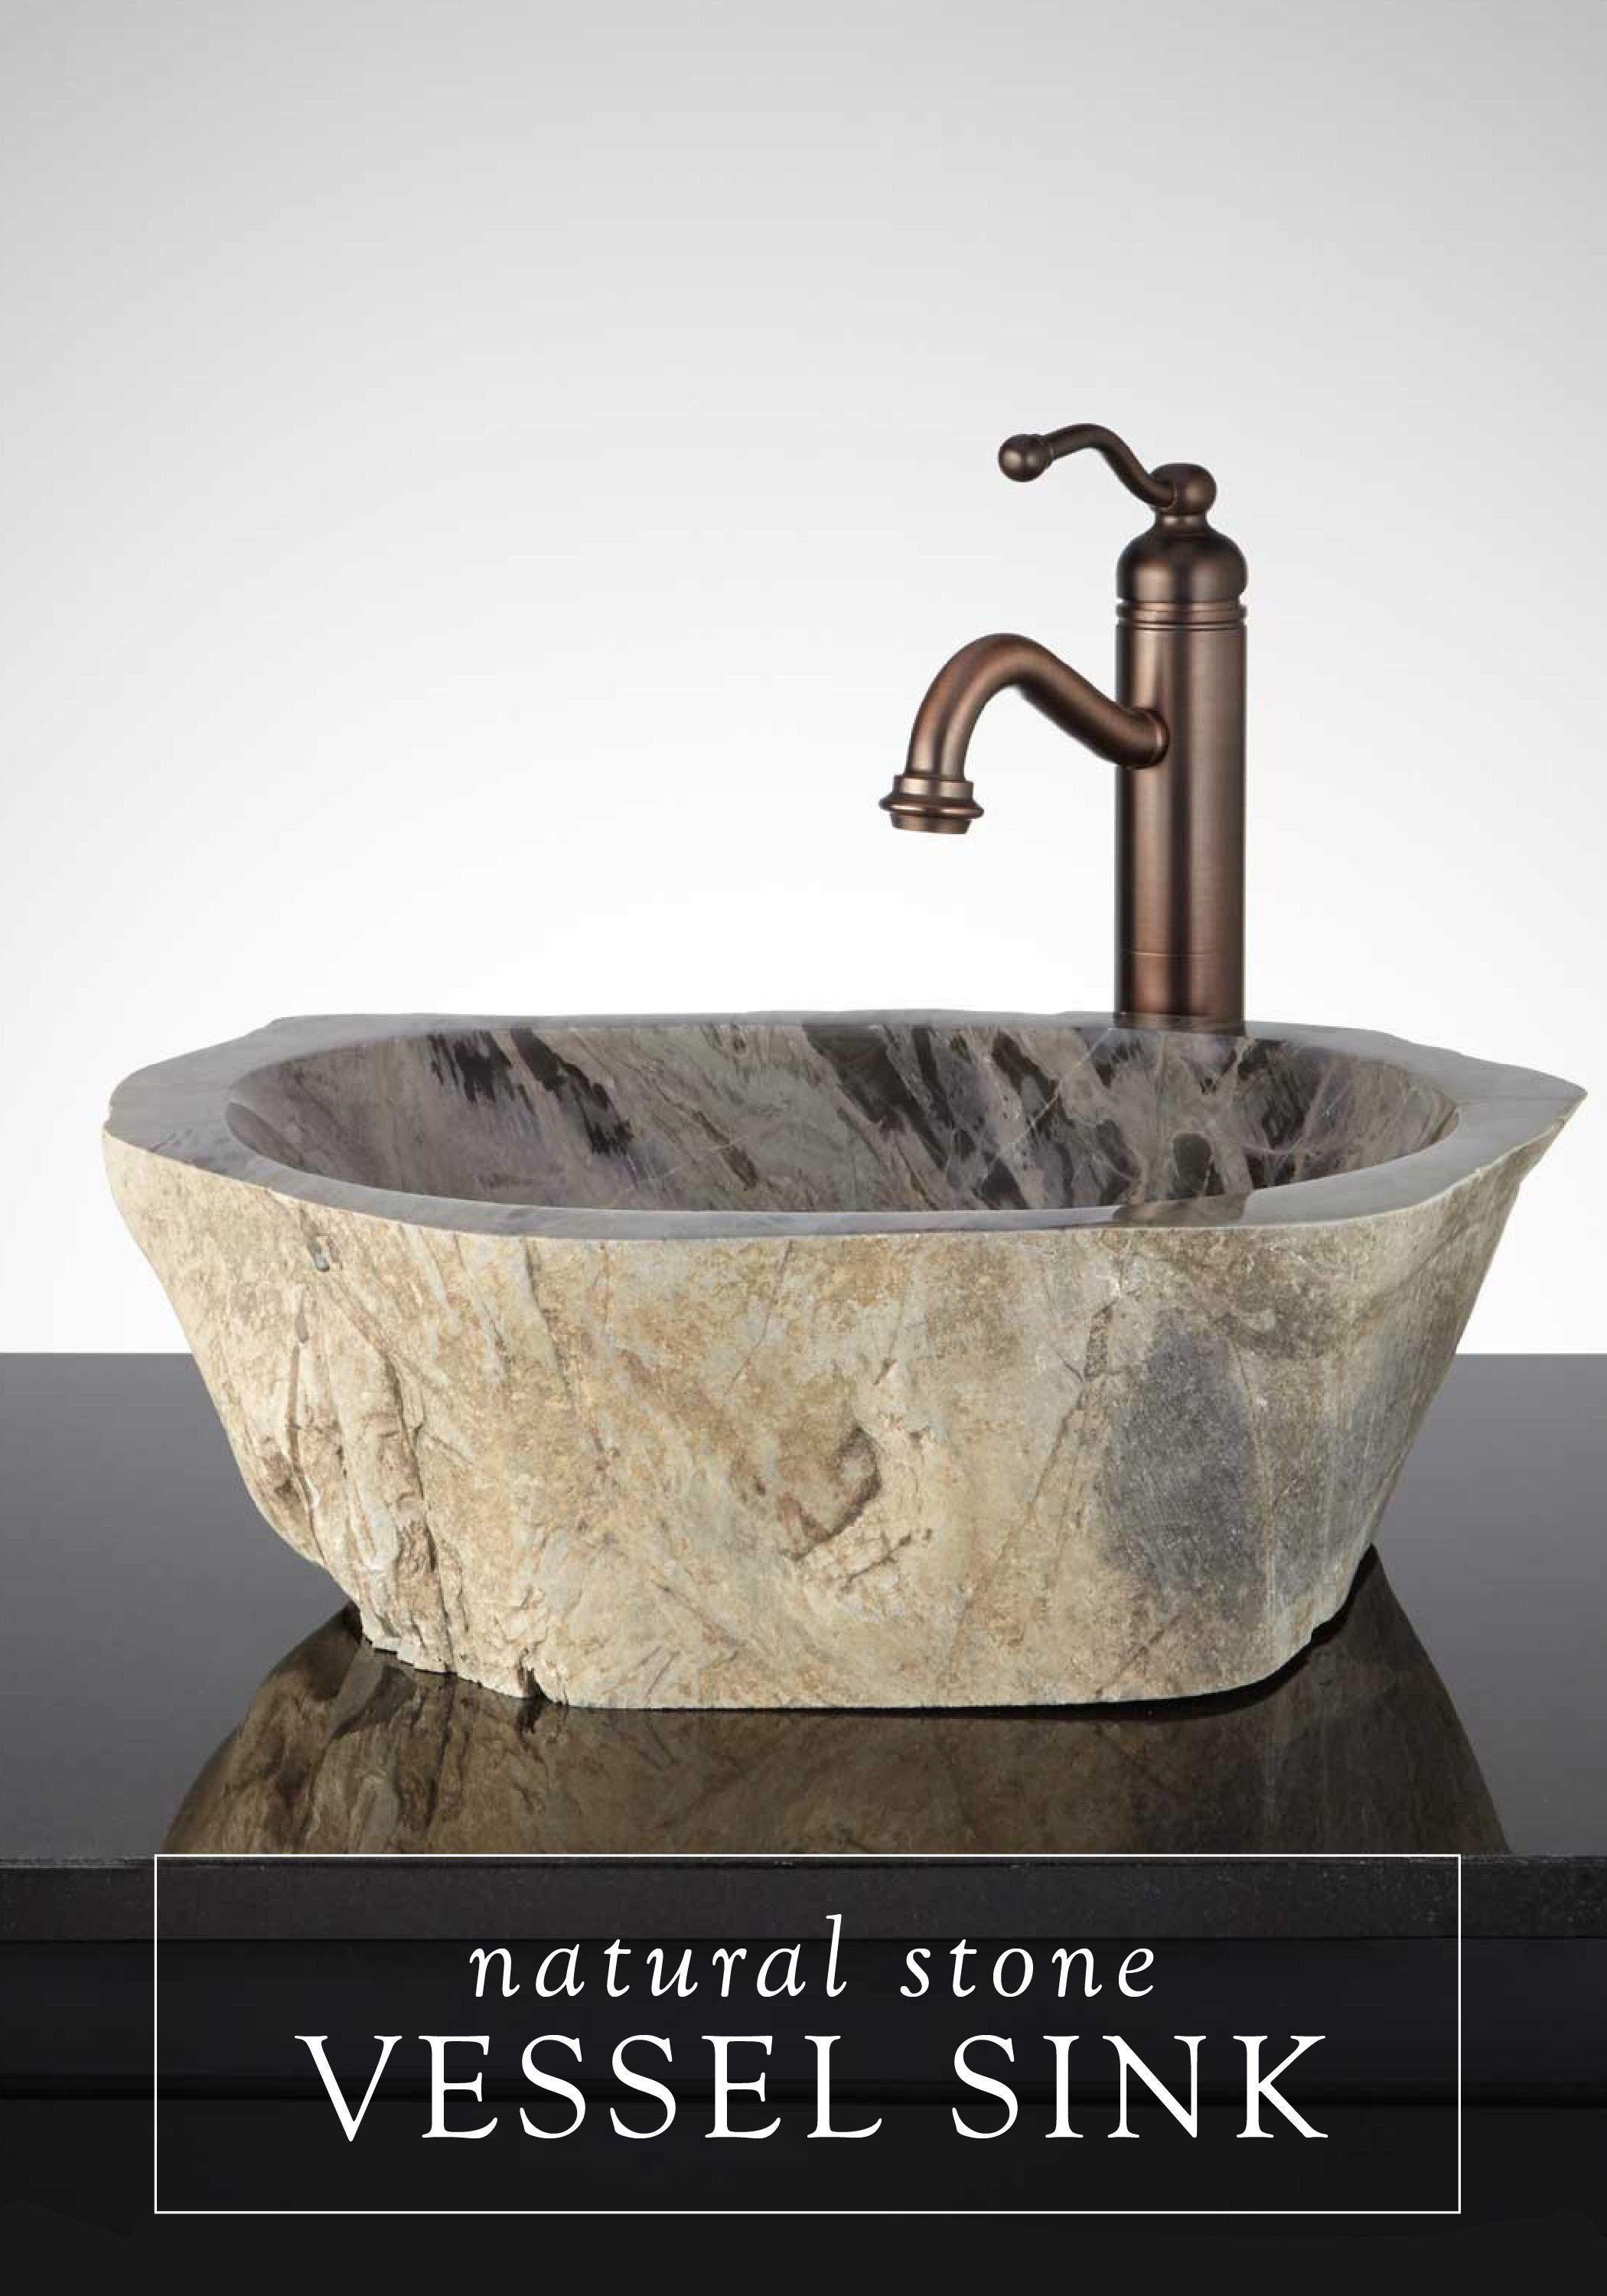 This Natural Stone Vessel Sink Is The Perfect Way To Add An Earthy